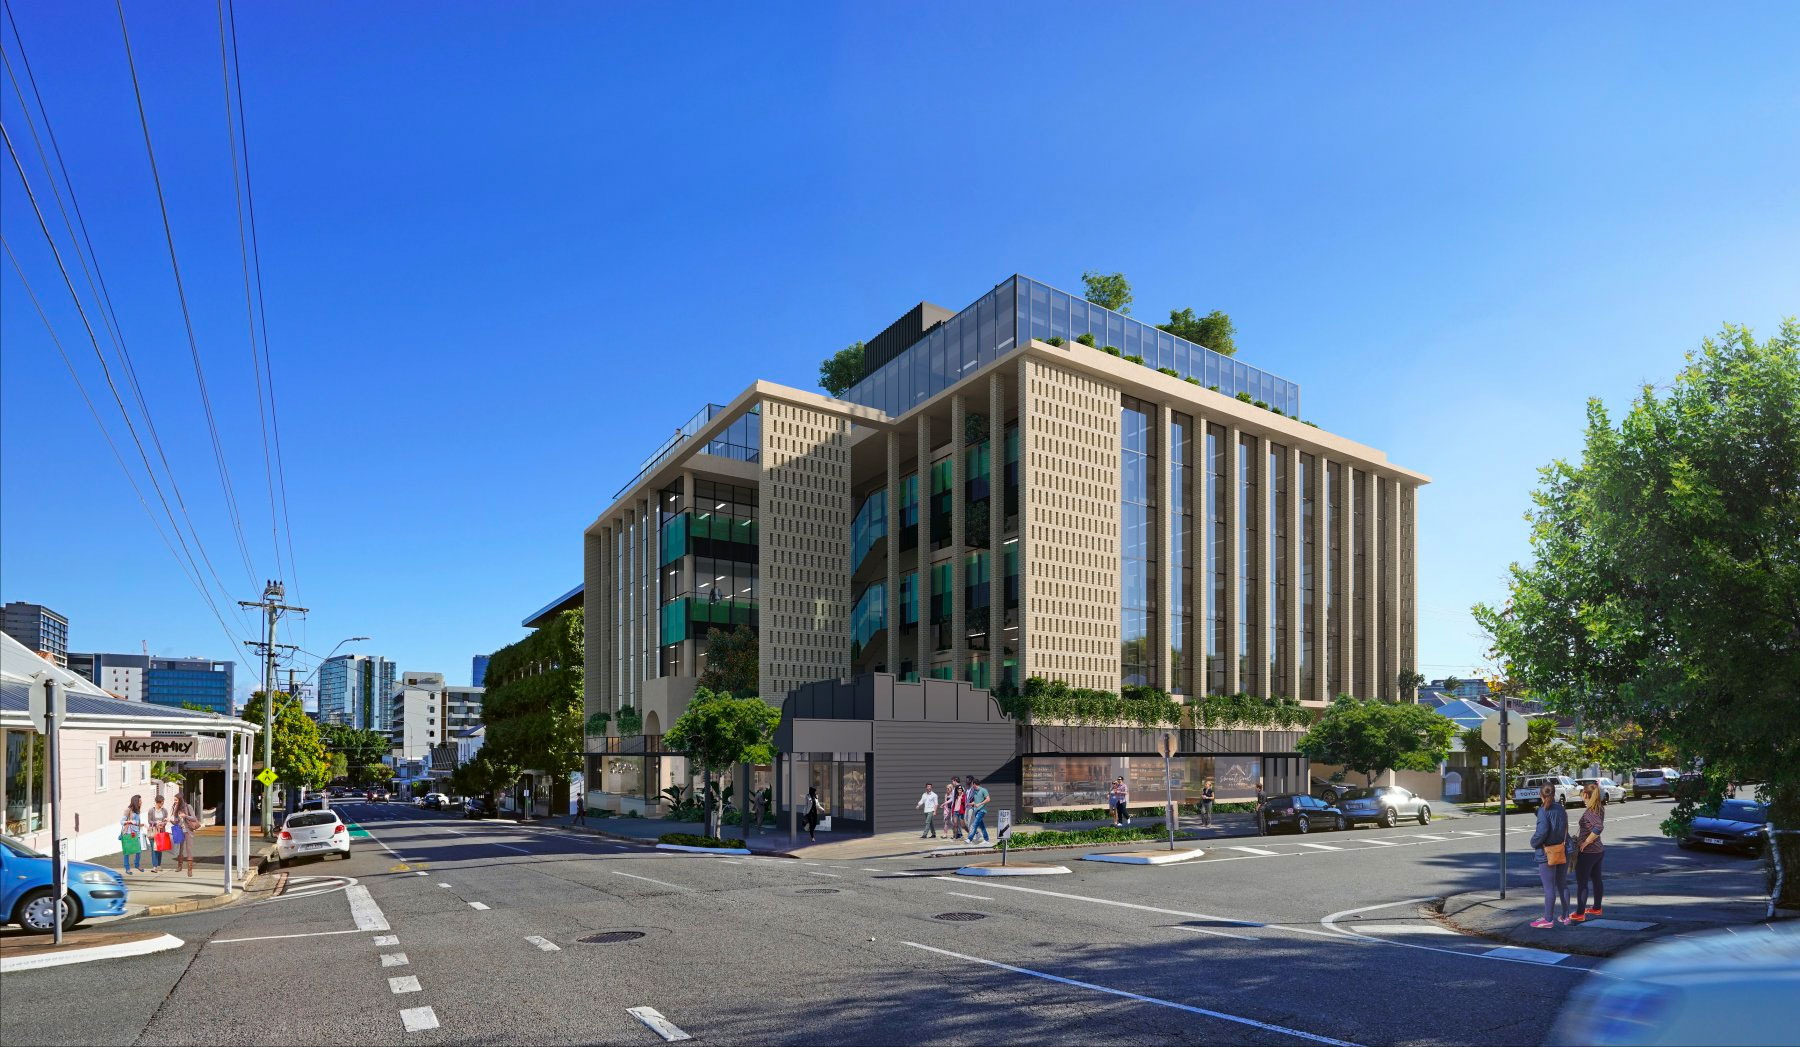 External render of the proposal for 72-76 James Street and 232 Harcourt Street in Fortitude Valley.